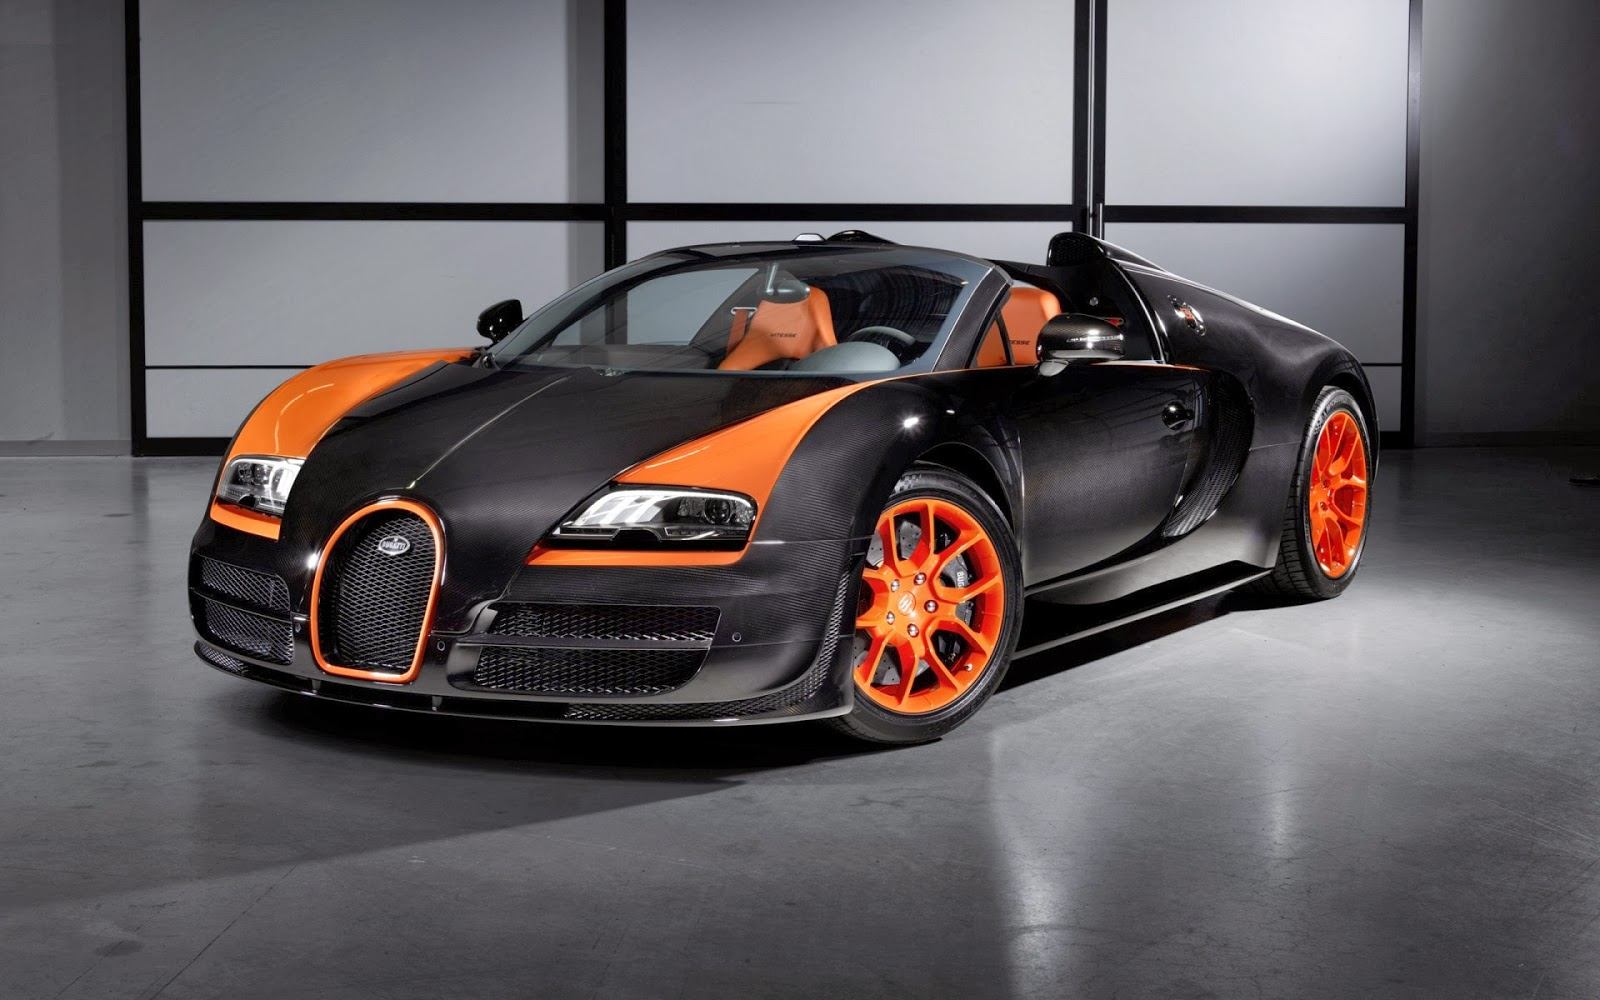 bugatti veyron 16 4 grand sport green 2014 wallpaper. Black Bedroom Furniture Sets. Home Design Ideas